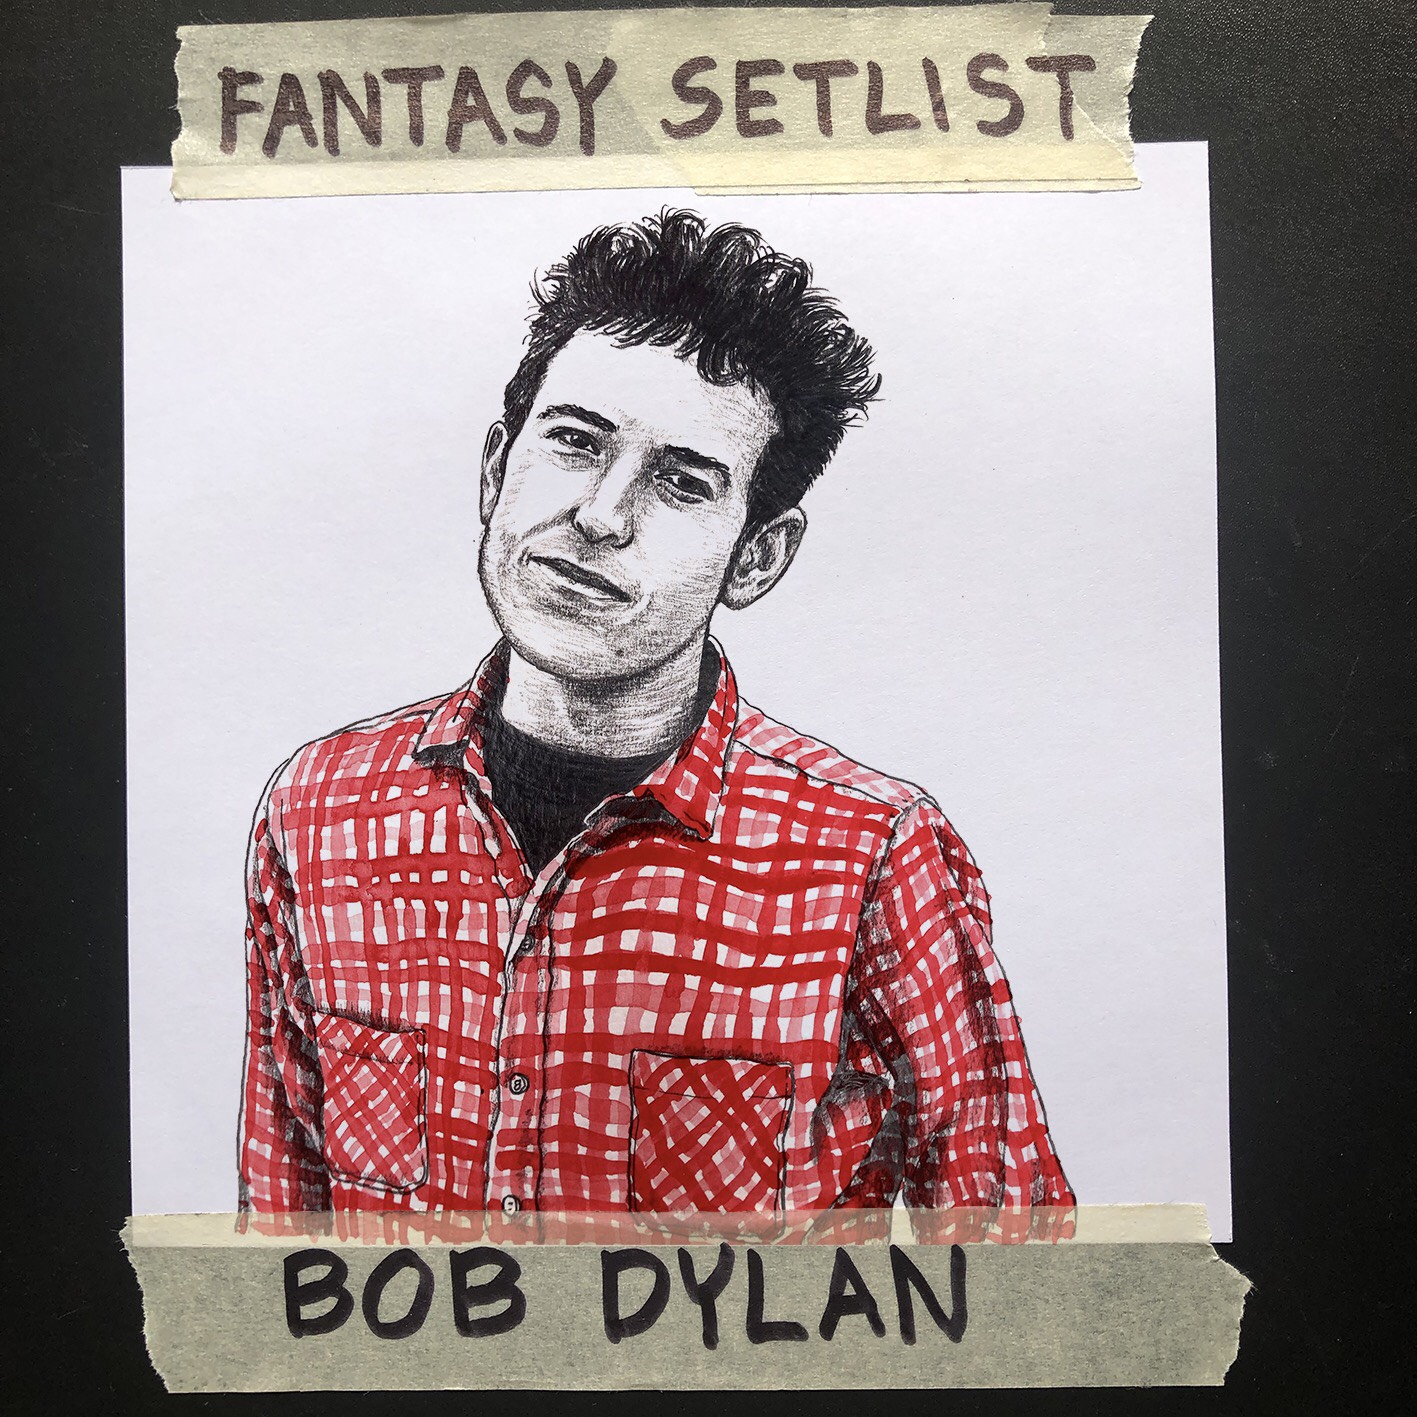 BOBBY DYLAN: THE FANTASY SETLIST (PODCAST)